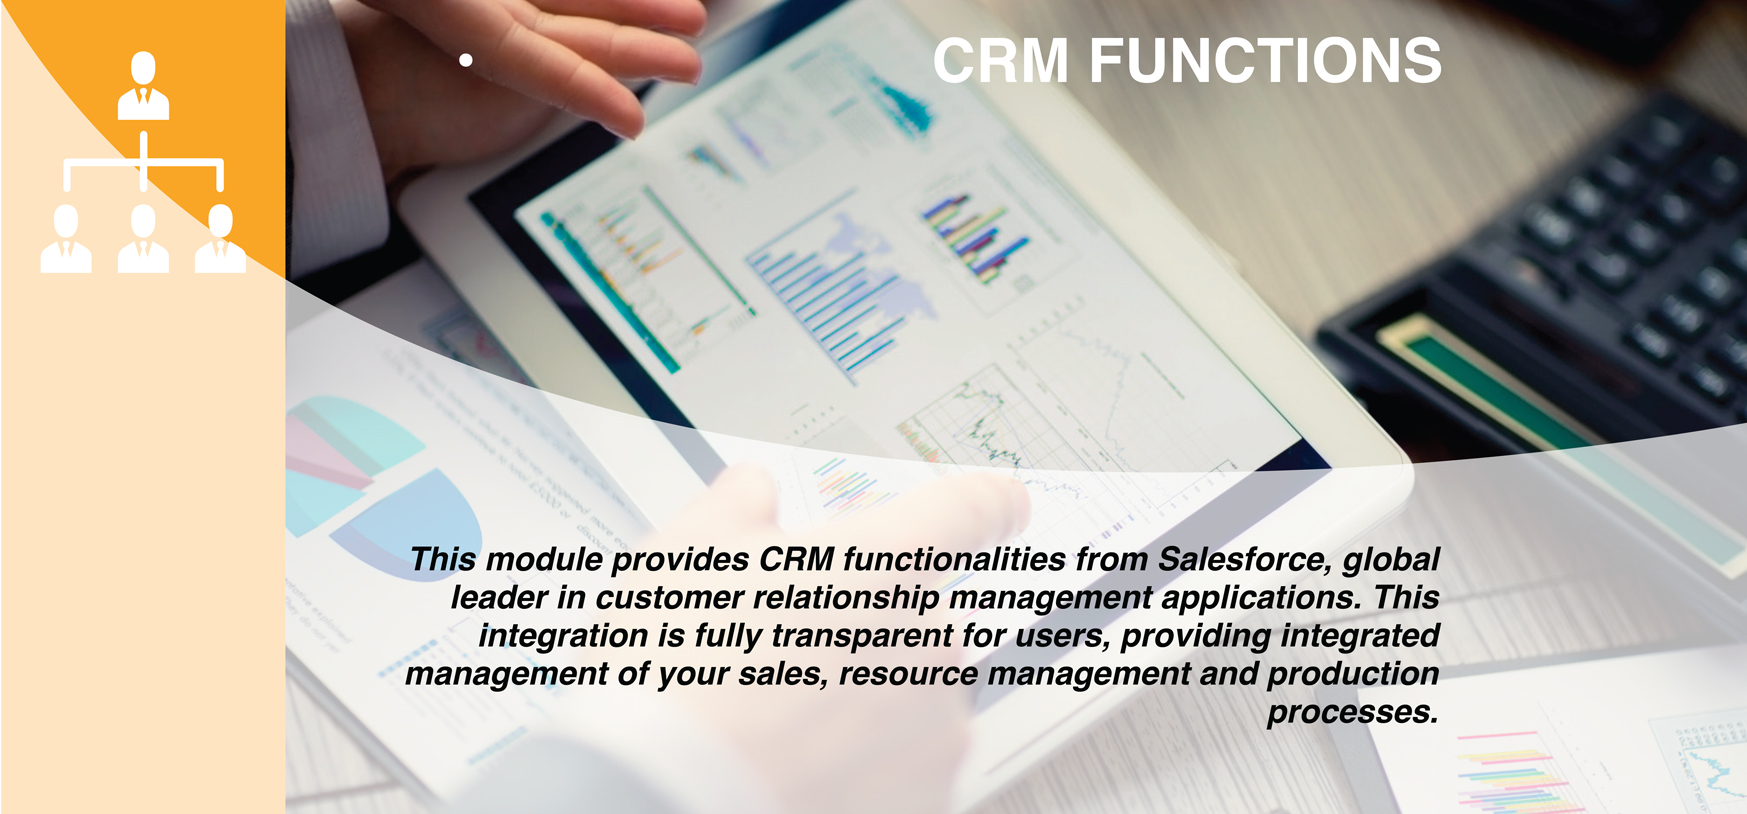 BANNER CRM FUNCTIONS